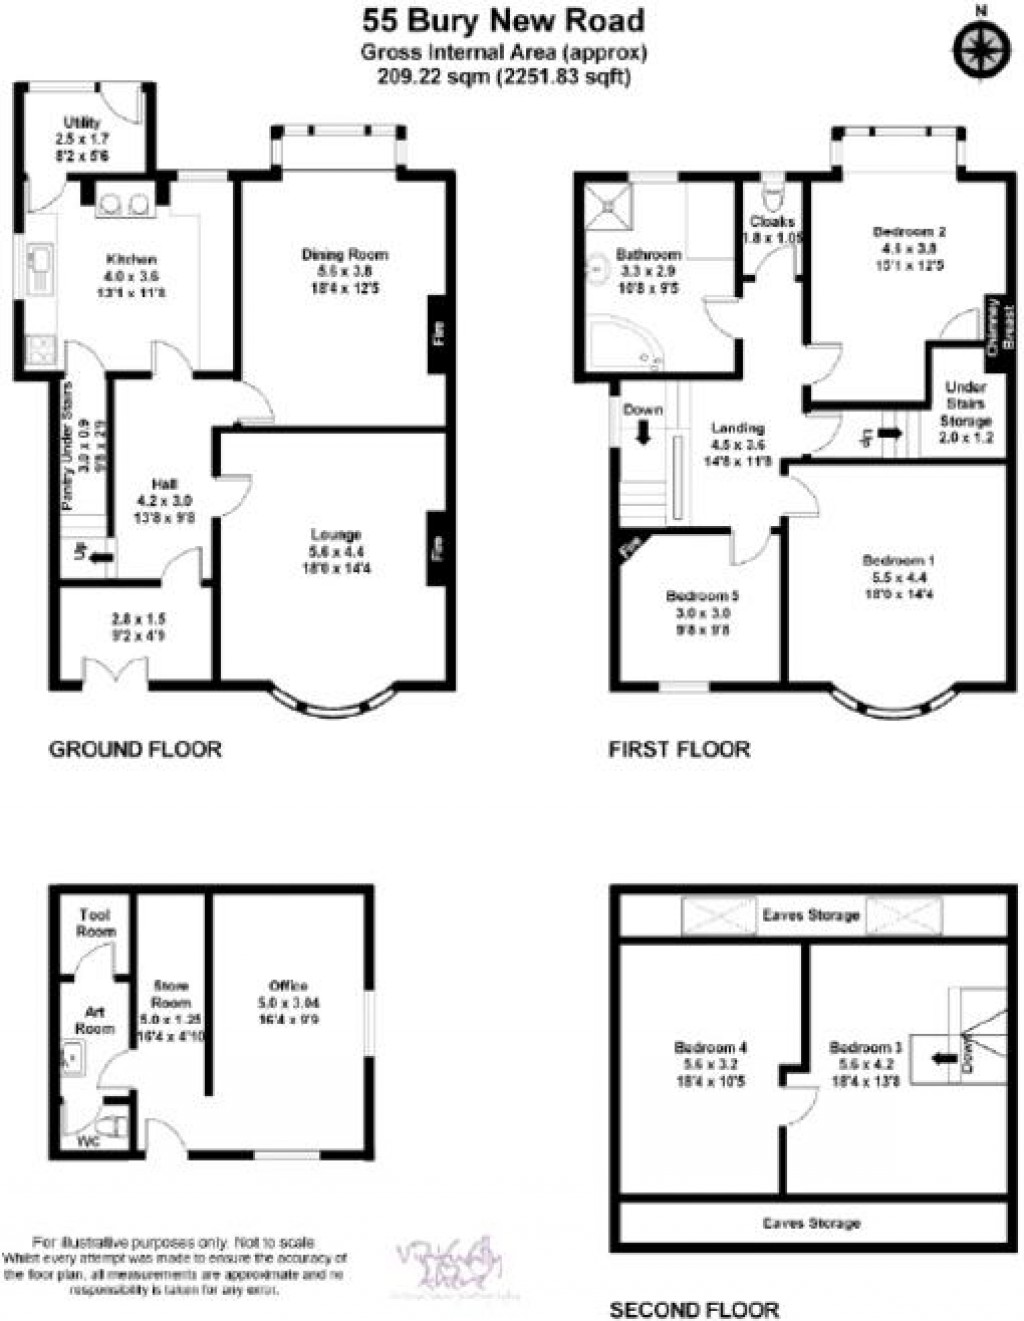 Floorplans For Bury New Road, Ramsbottom, Bury